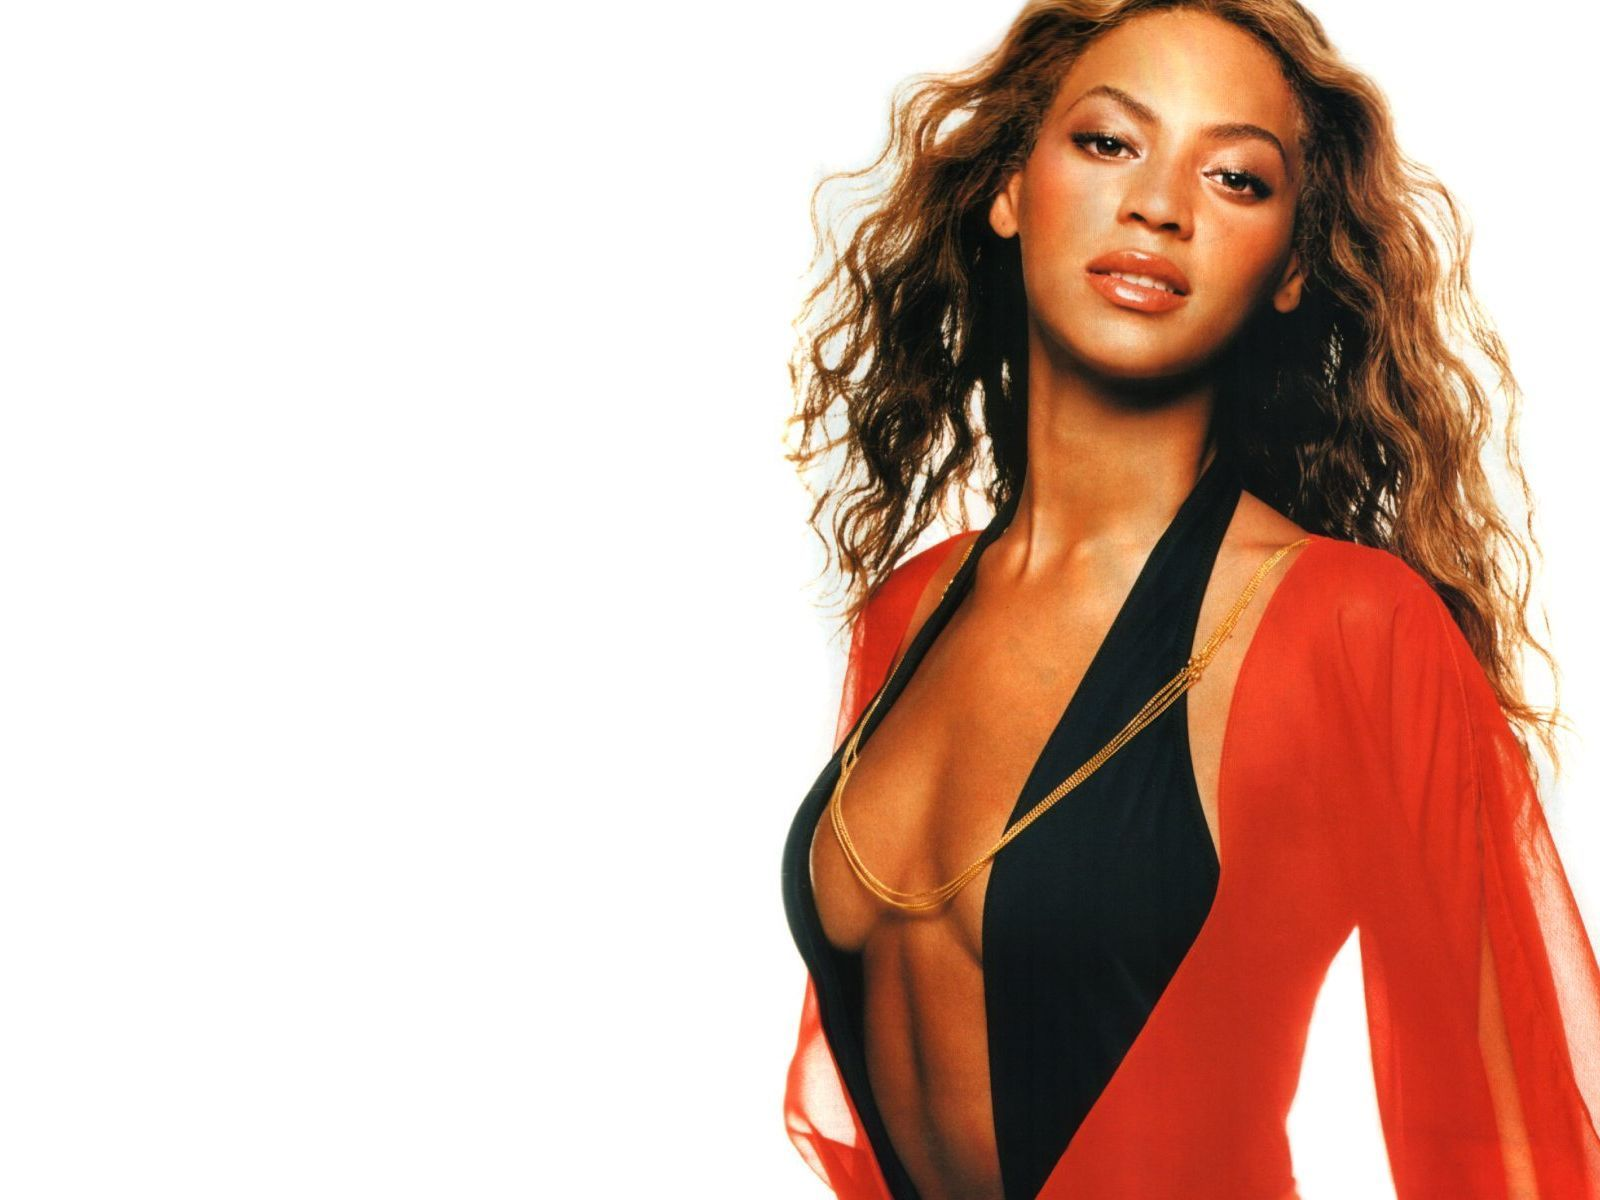 shahd beyonce wallpapers beyonce wallpaper 2622596